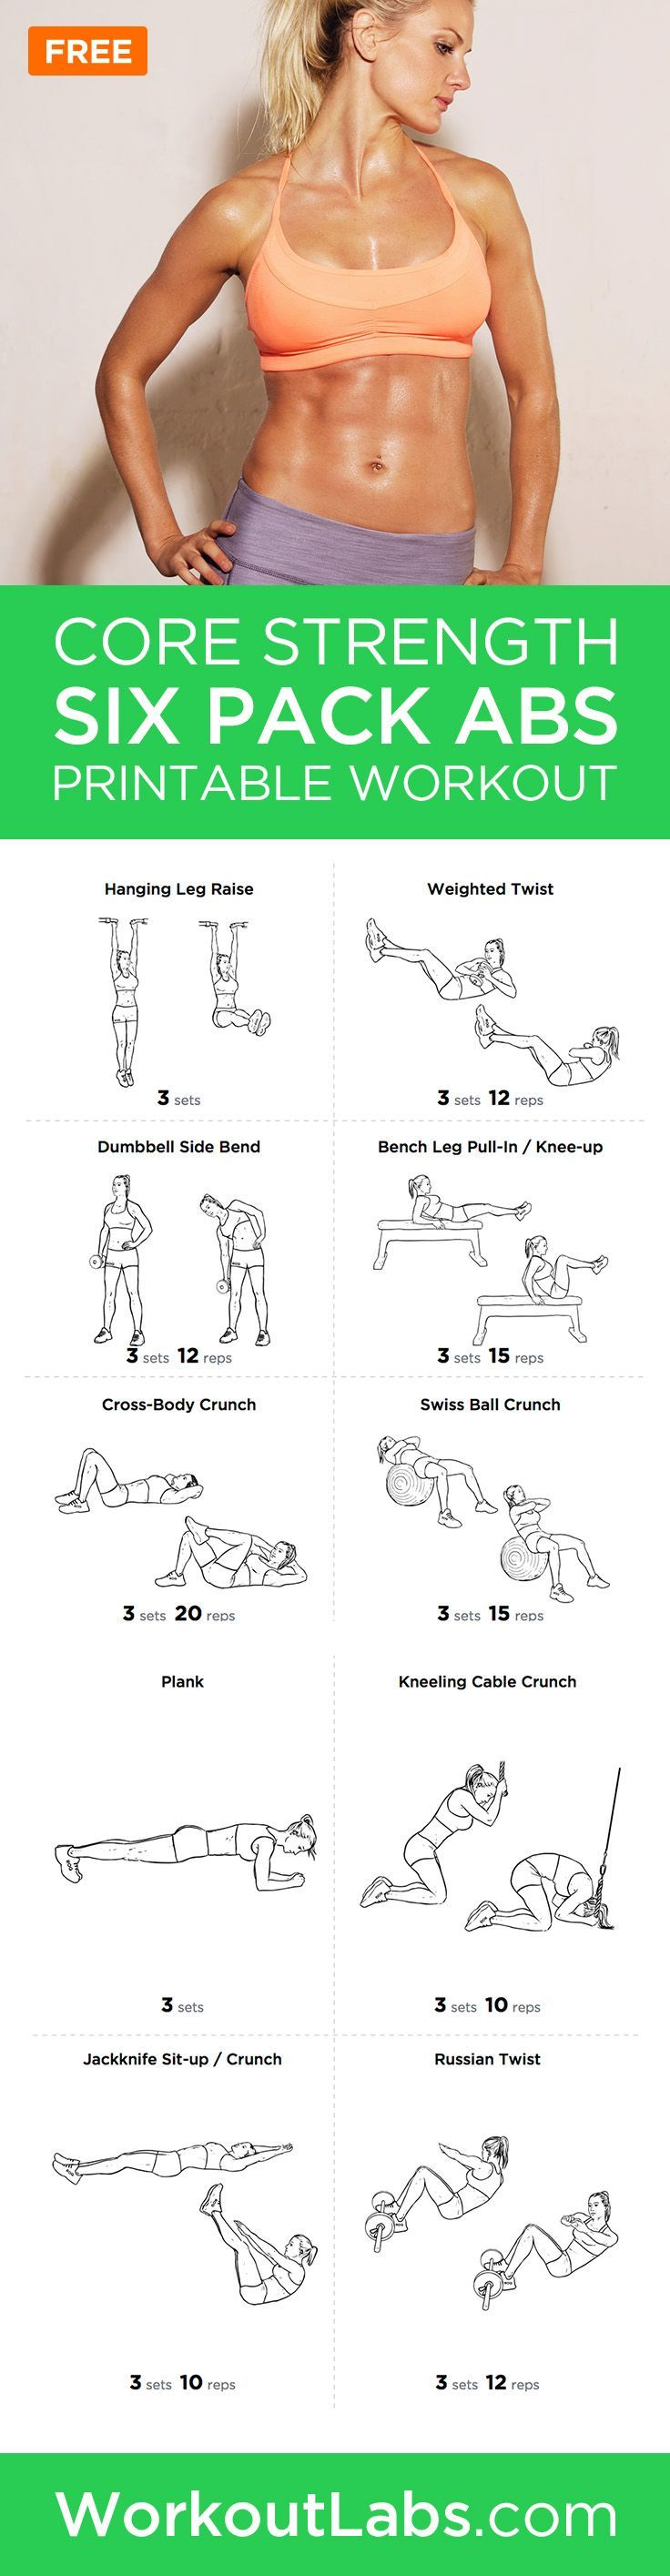 Six Pack Abs Core Strength Workout Routine for Men and Women – Want to get that perfect six pack? Try this comprehensive abdominal gym workout routine that will hit your upper and lower abs as well as obliques for a perfectly toned core. [ SkinnyFoxDetox.com ]